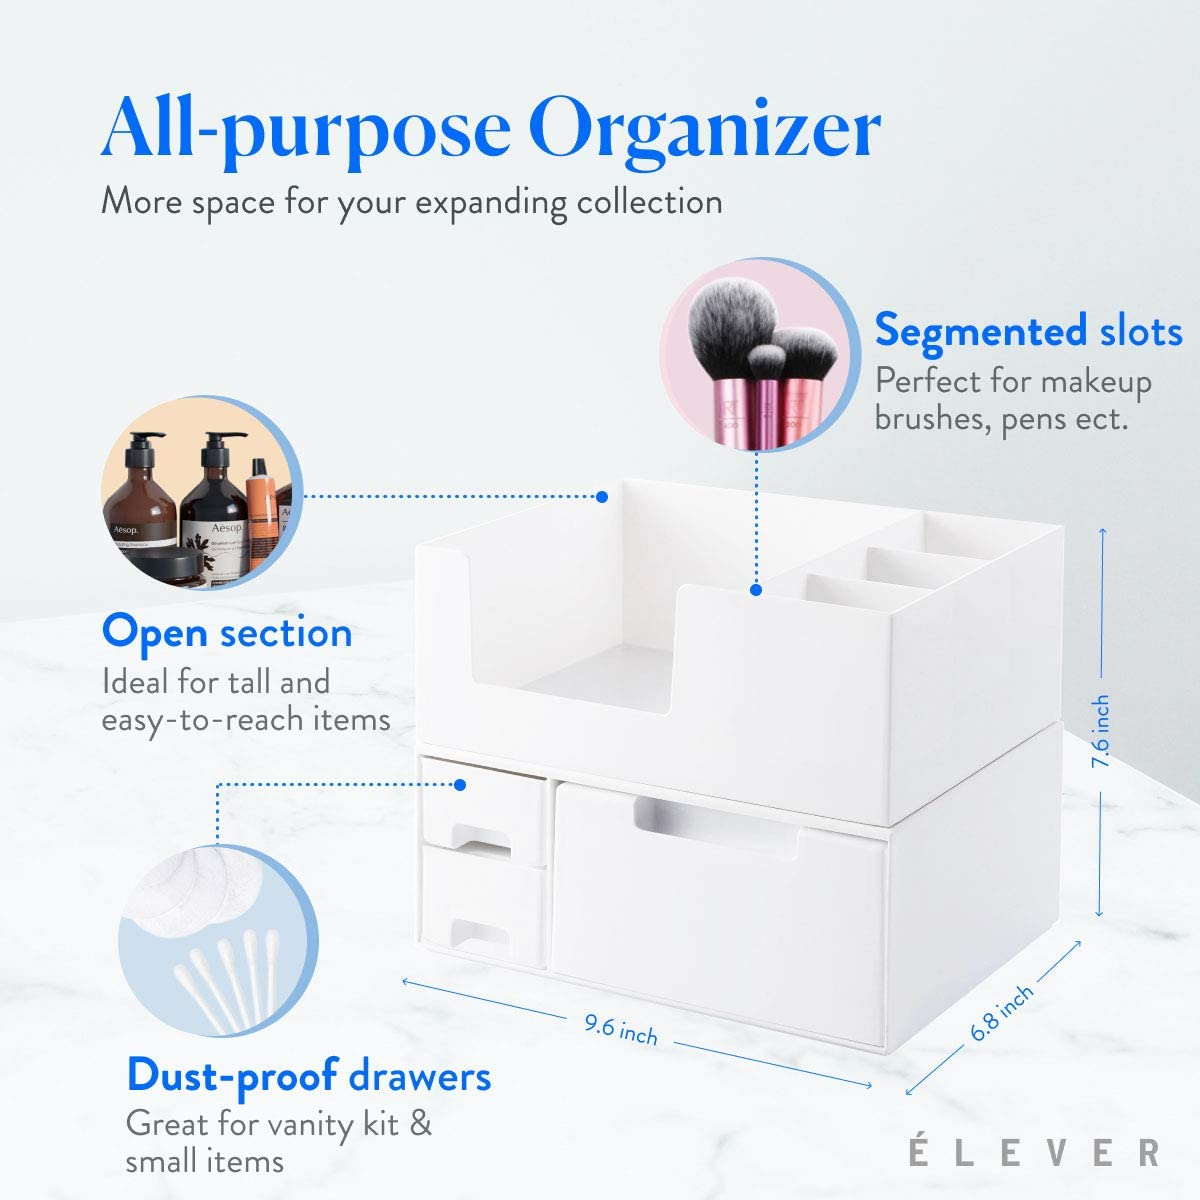 White Makeup Organizer For Vanity Organizers And Storage, Make Up Organizator With Drawers, Organizador De Maquillaje Skincare Organizers And Cosmetics Organizer Display Cases Make Up Organizer Stands : Beauty & Personal Care